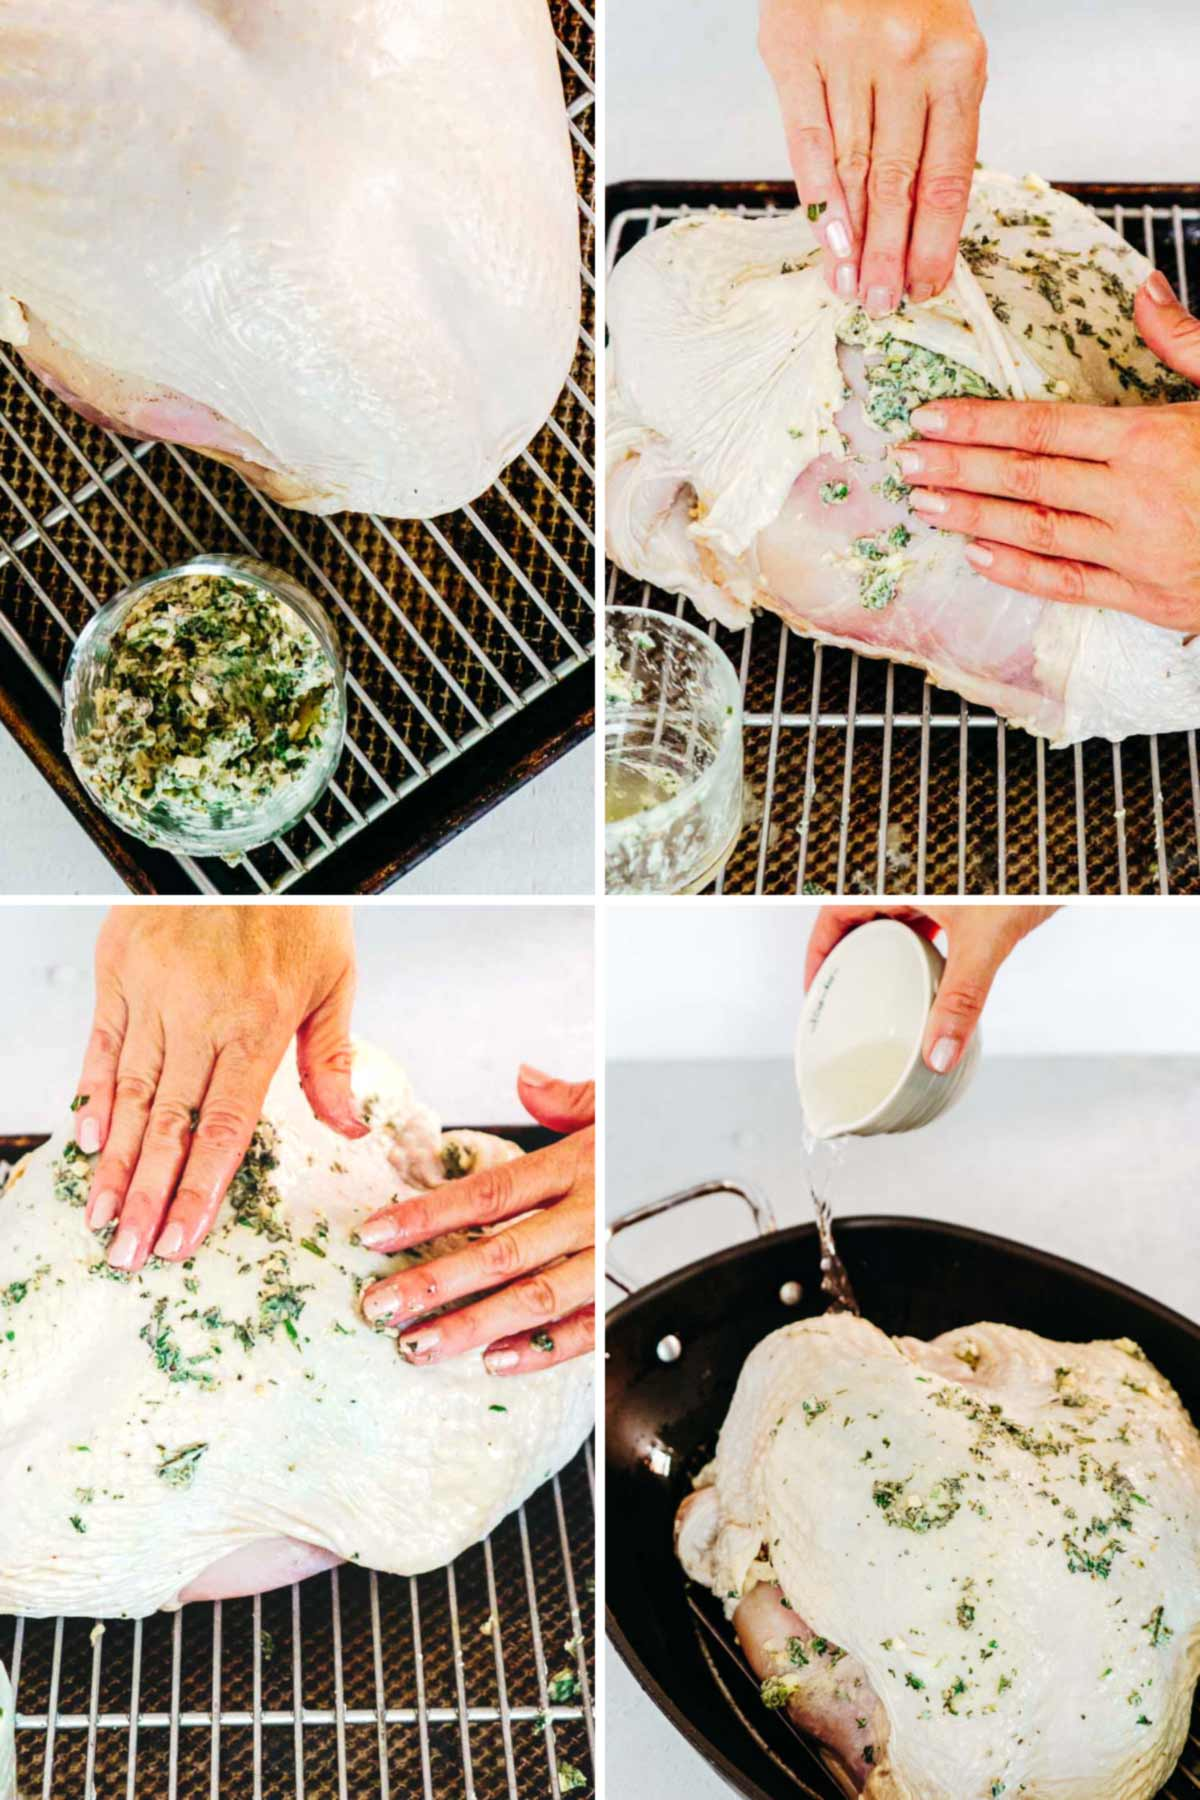 demonstrating how to rub herb butter under turkey breast skin